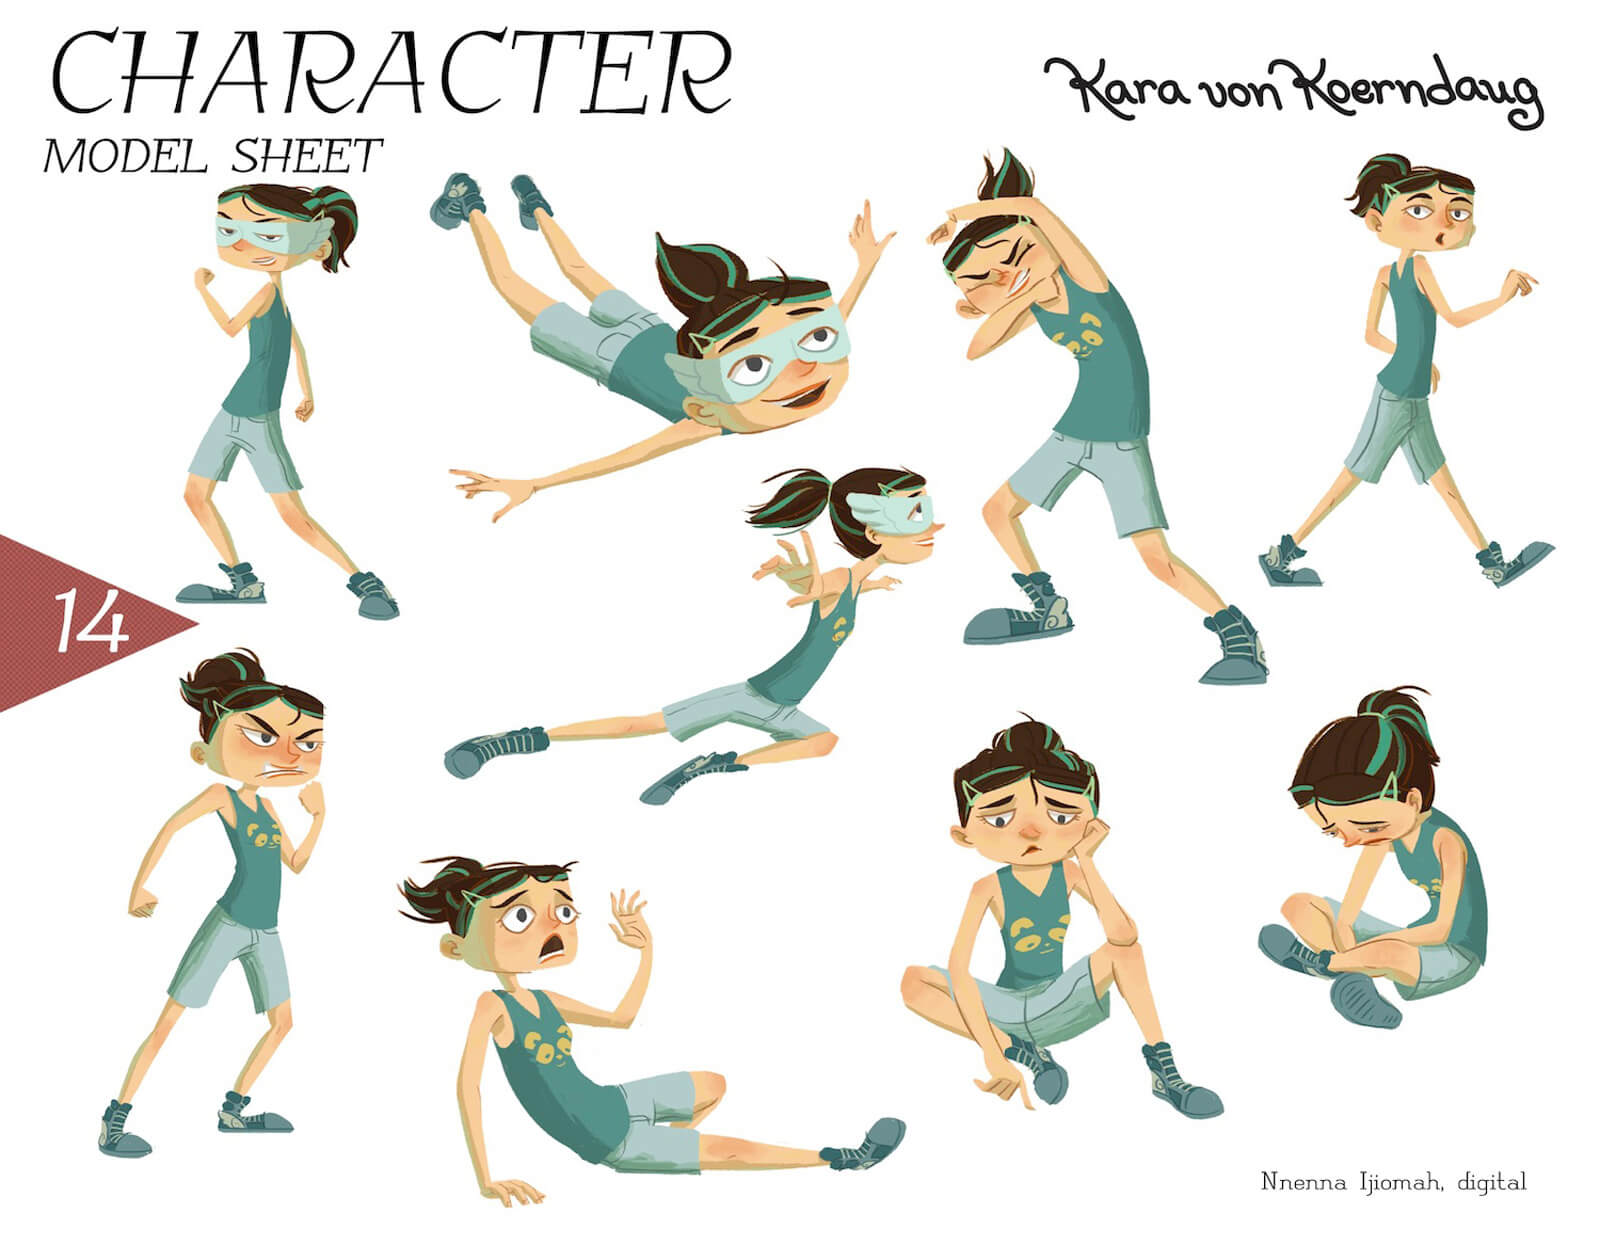 Model sheet for the character of Kara von Koerndaug, including actions like flying, walking, sitting, anger, and others